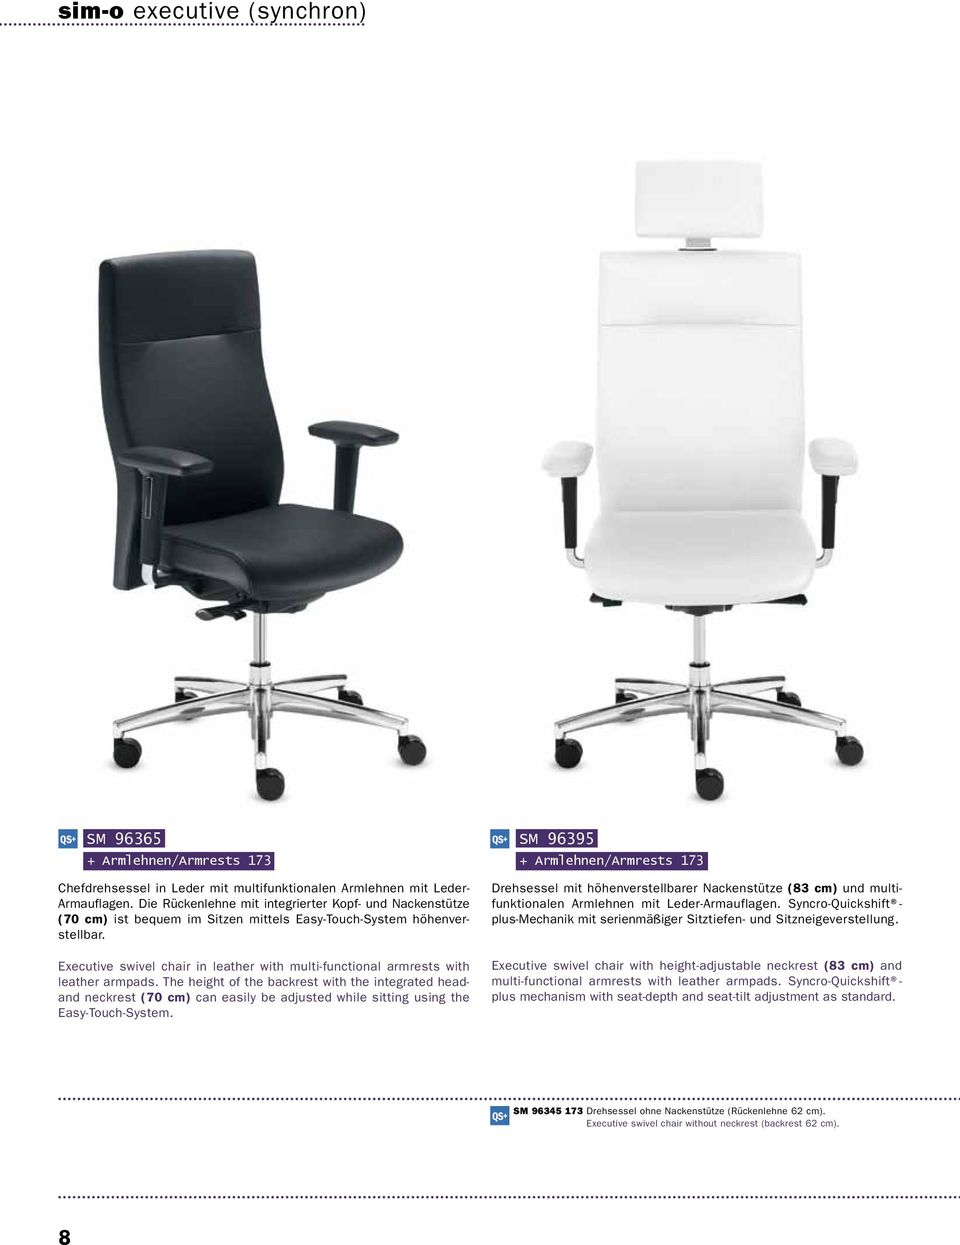 Executive swivel chair in leather with multi-functional armrests with leather armpads.